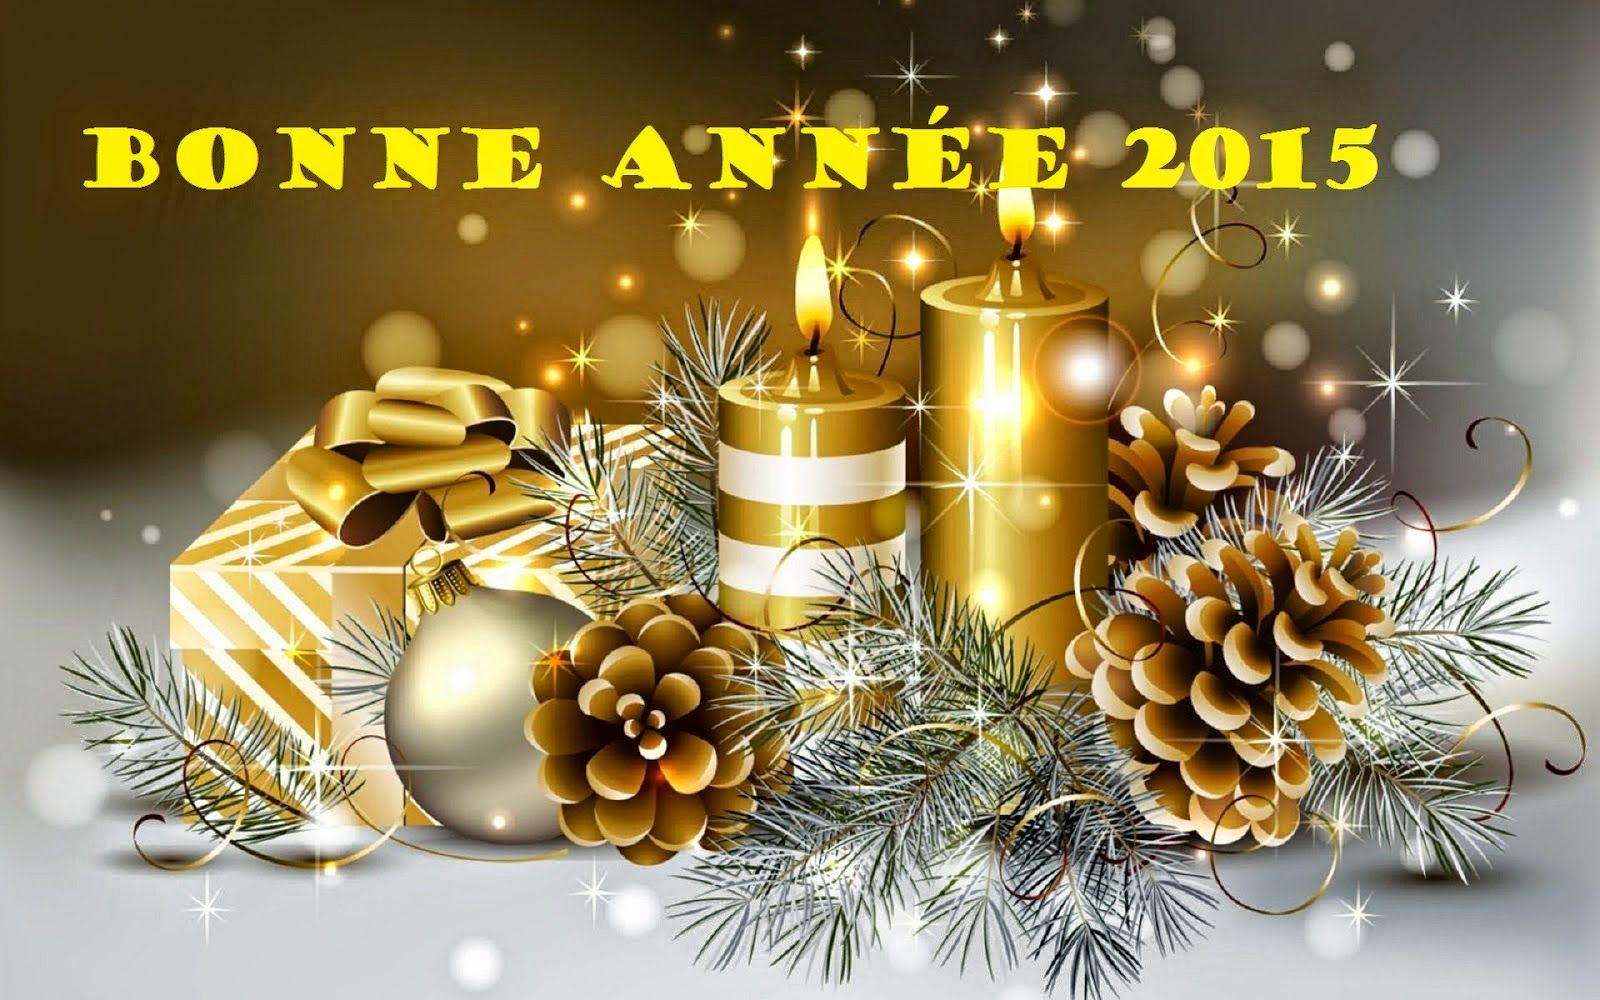 Bonne Anne New Year Wishes In French Greetings For New Year In